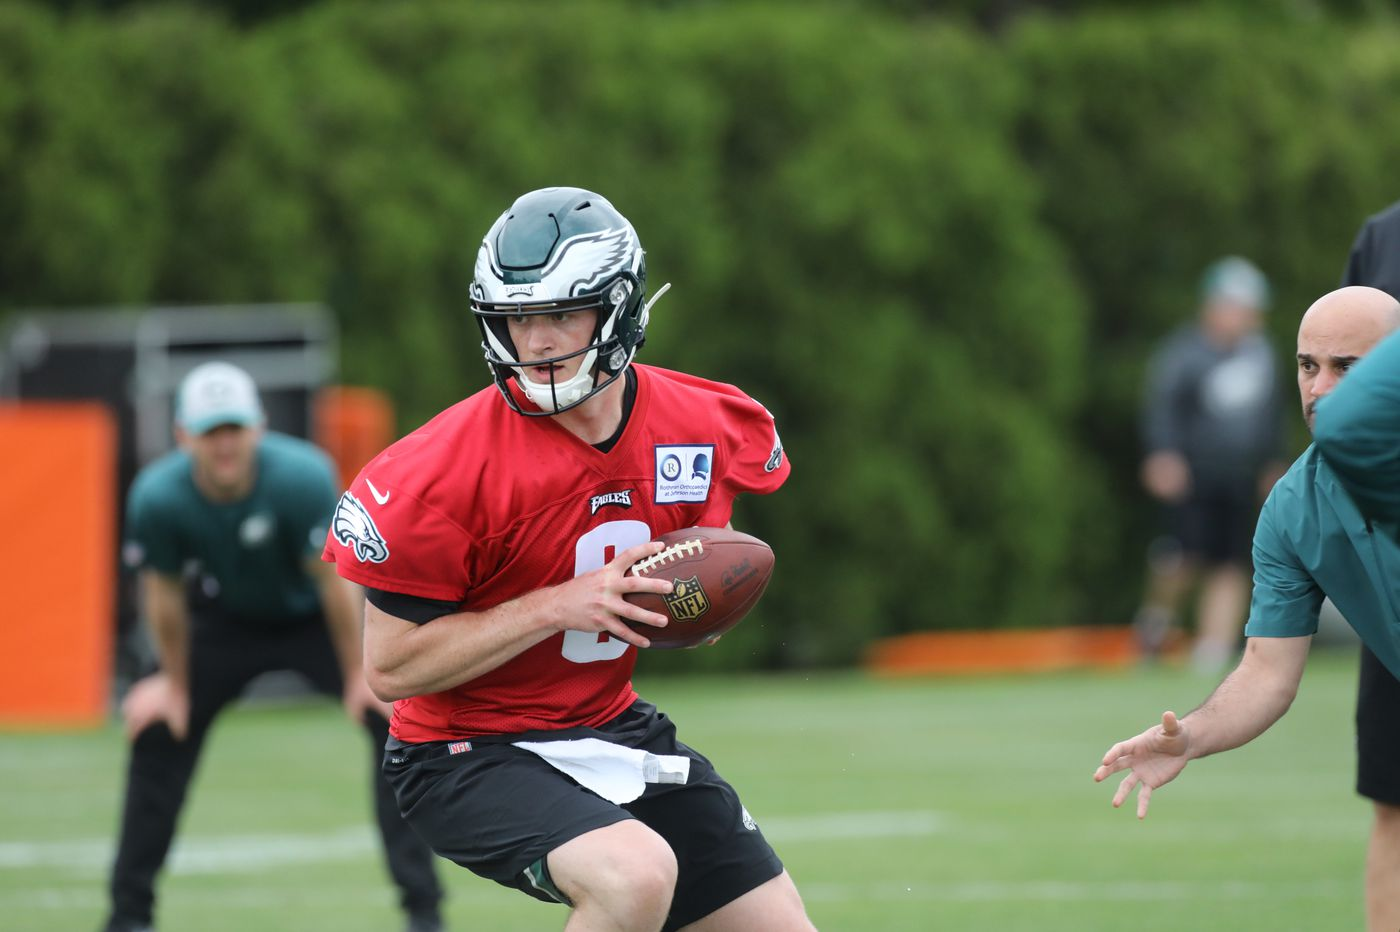 161f66286de From record-setter to reserve, Clayton Thorson is first quarterback draft  pick for Eagles to develop since Carson Wentz